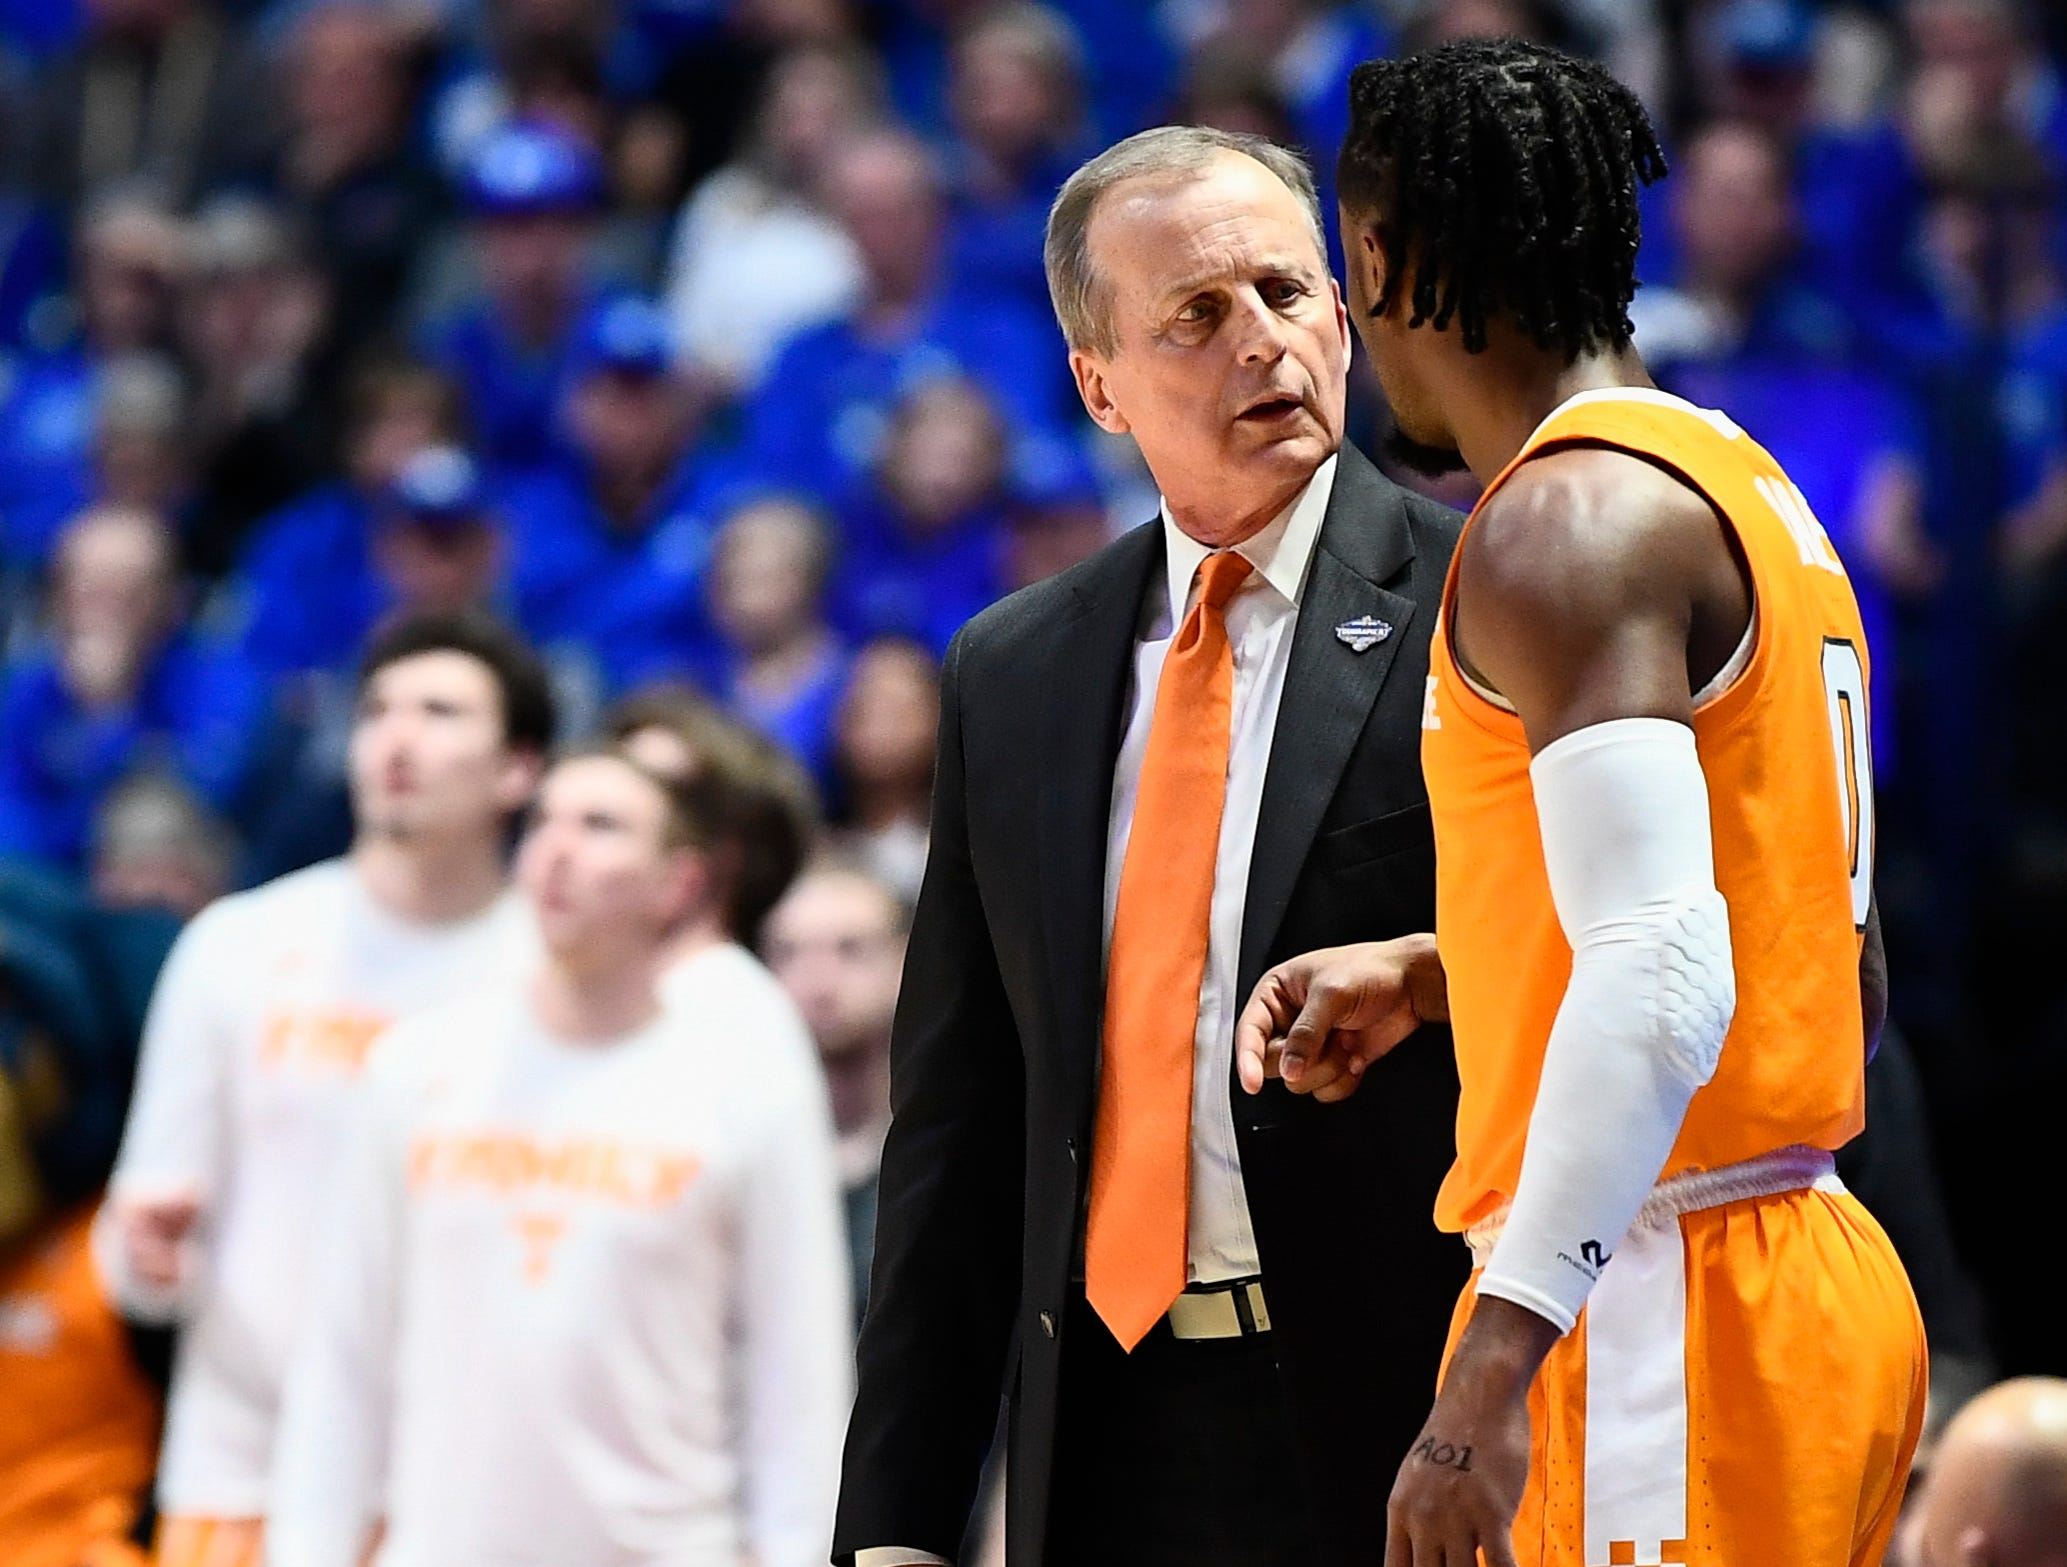 Tennessee head coach Rick Barnes speaks with guard Jordan Bone (0) during the first half of the SEC Men's Basketball Tournament semifinal game against Kentucky at Bridgestone Arena in Nashville, Tenn., Saturday, March 16, 2019.